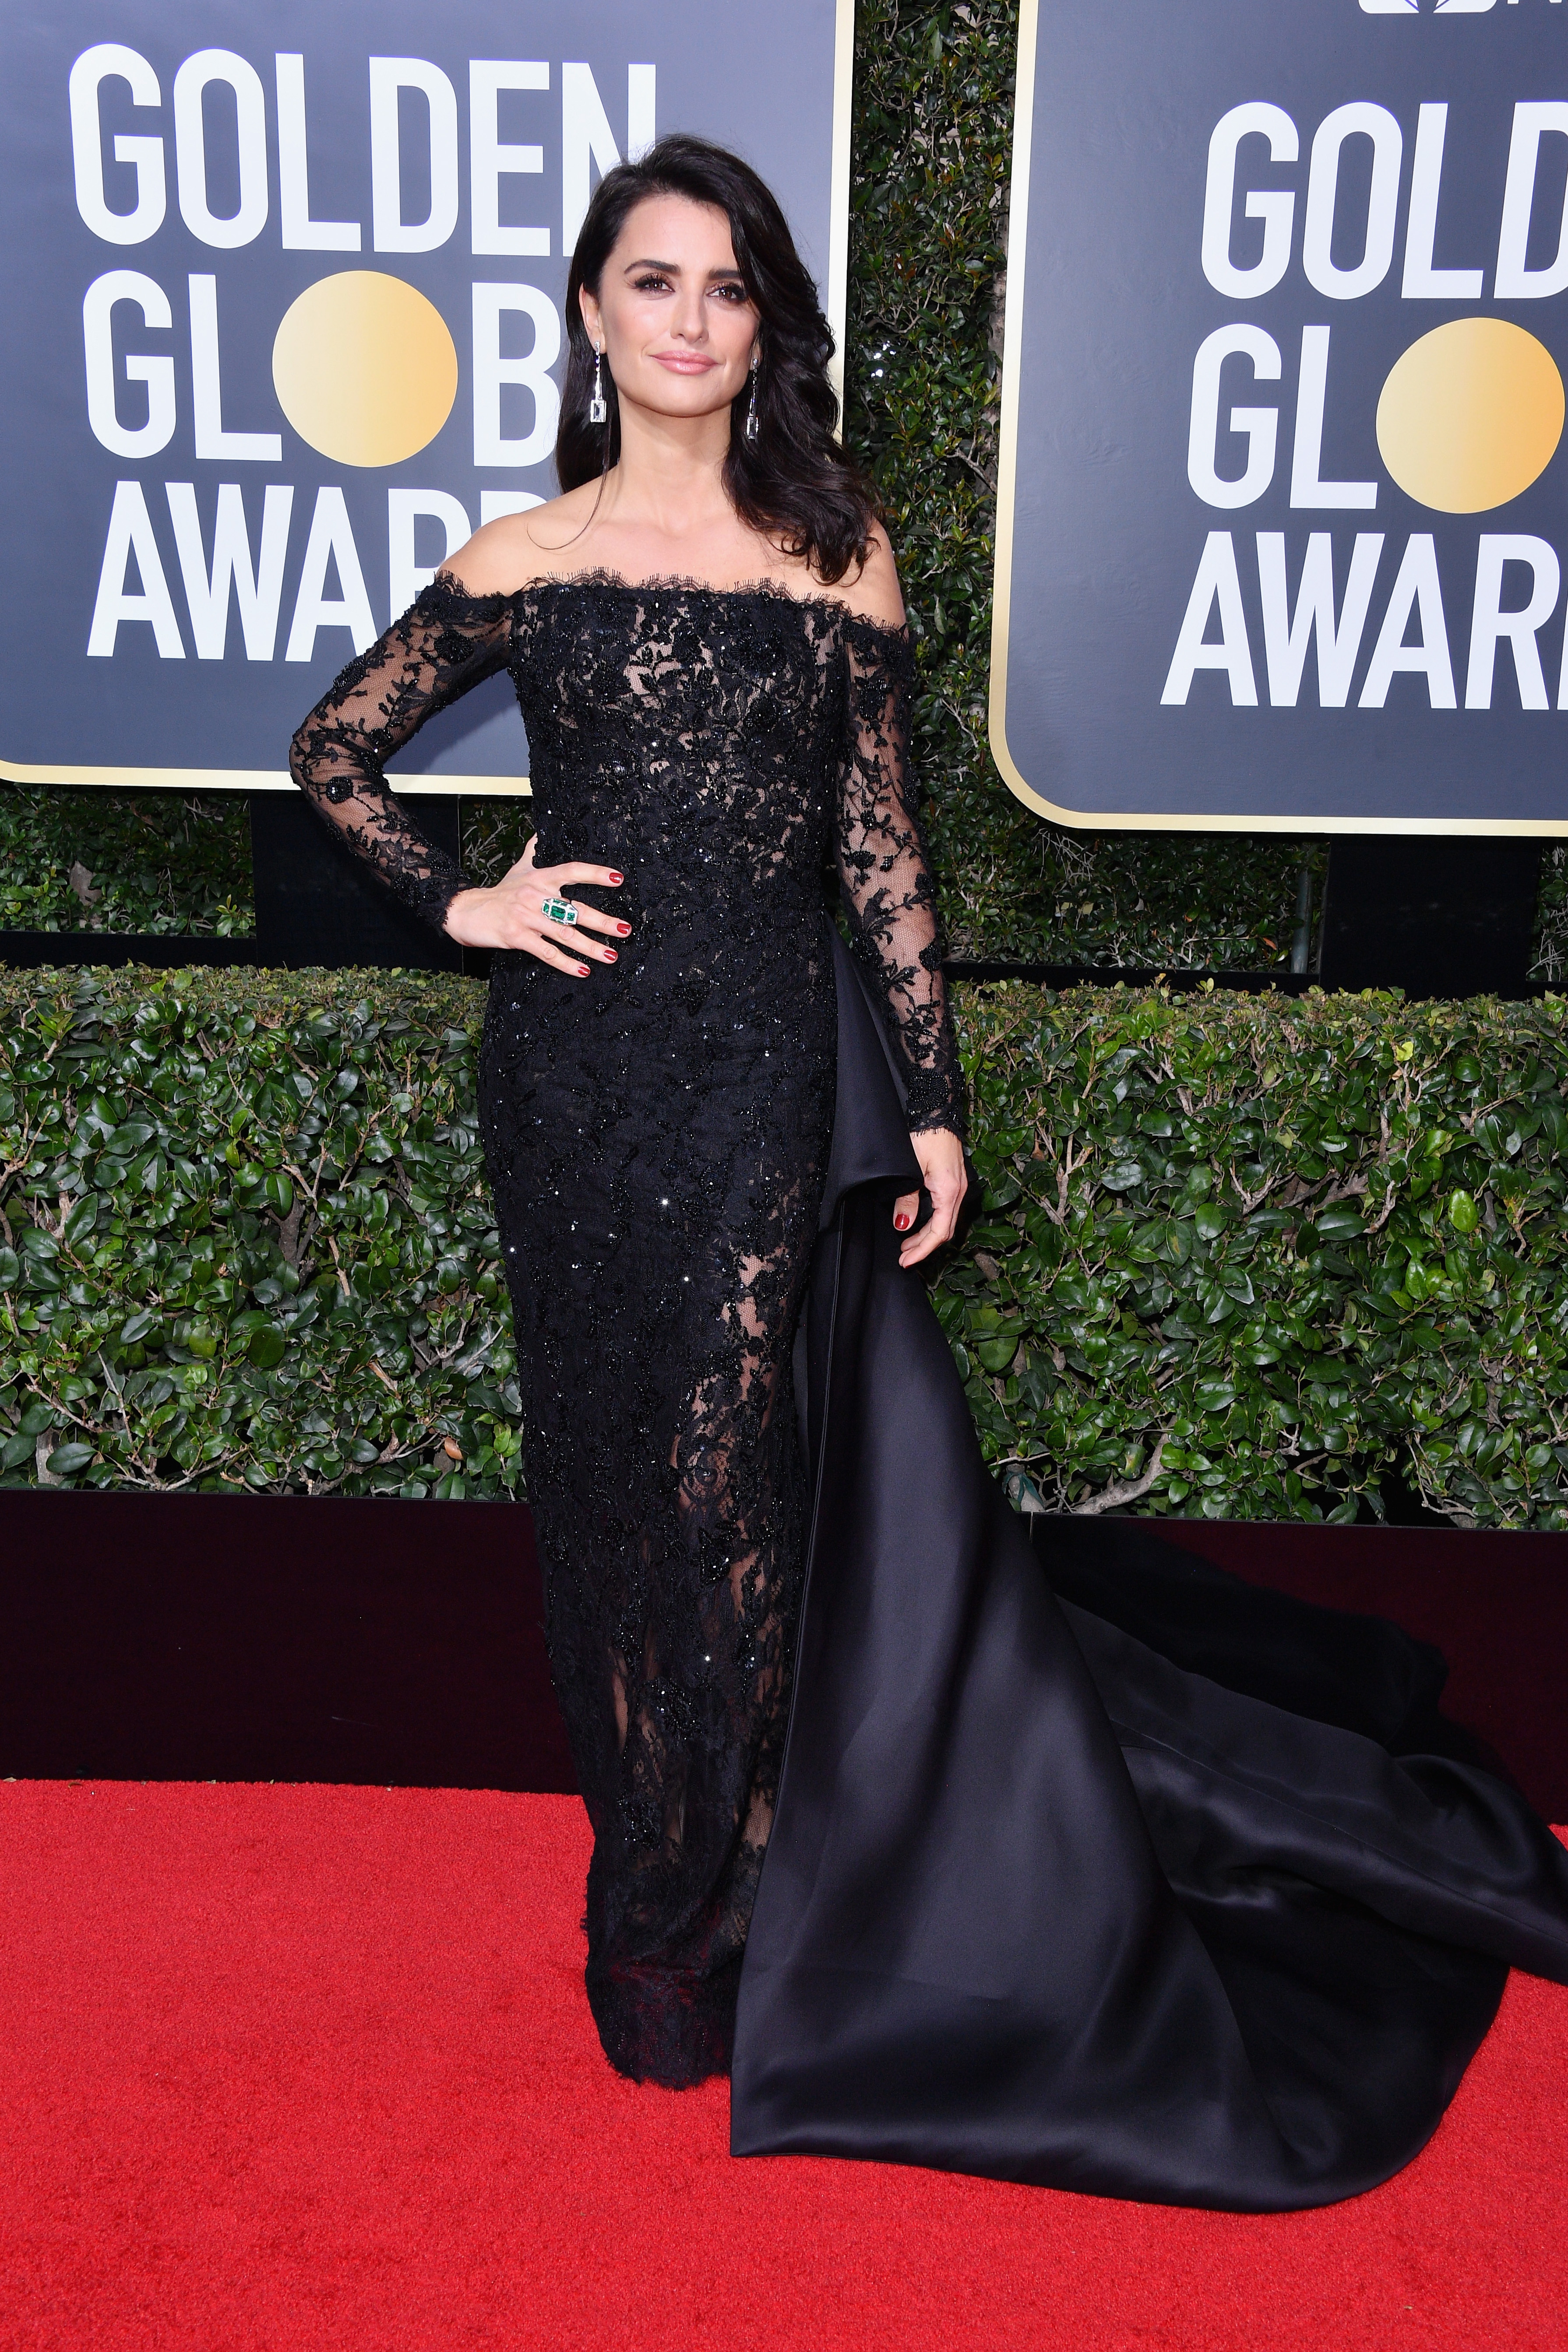 BEVERLY HILLS, CA - JANUARY 07:  Actor Penélope Cruz attends The 75th Annual Golden Globe Awards at The Beverly Hilton Hotel on January 7, 2018 in Beverly Hills, California.  (Photo by George Pimentel/WireImage)